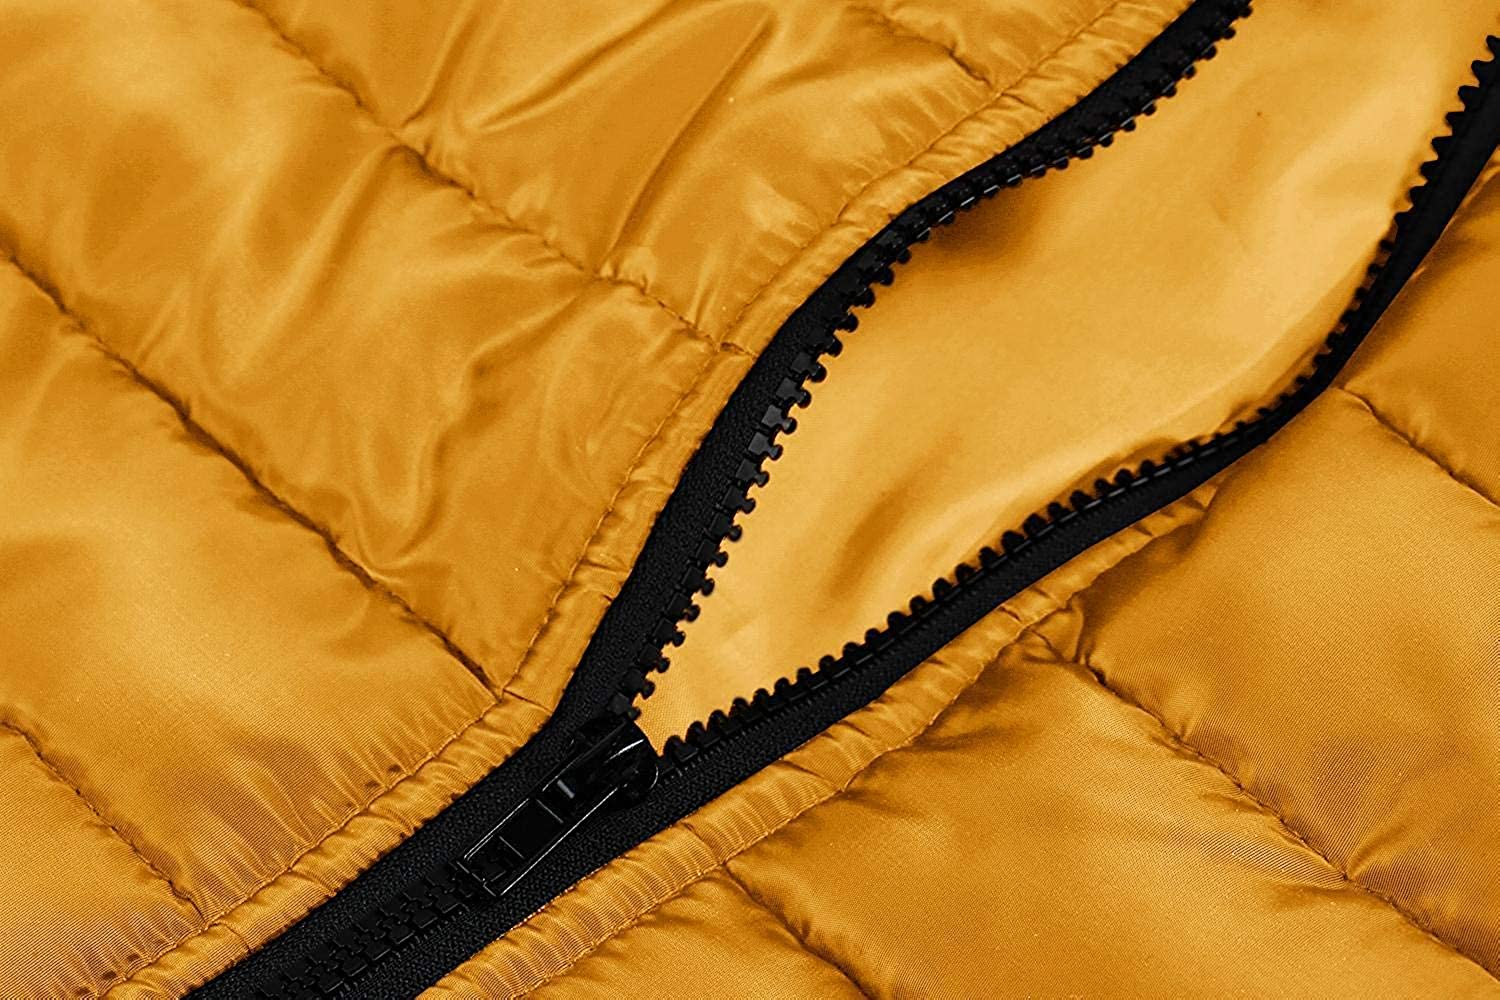 PASLTER Mens Puffer Vest Jacket Quilted Removable Hooded Sleeveless Zip Up Coats Winter Warm Gilet Vests with Pocket